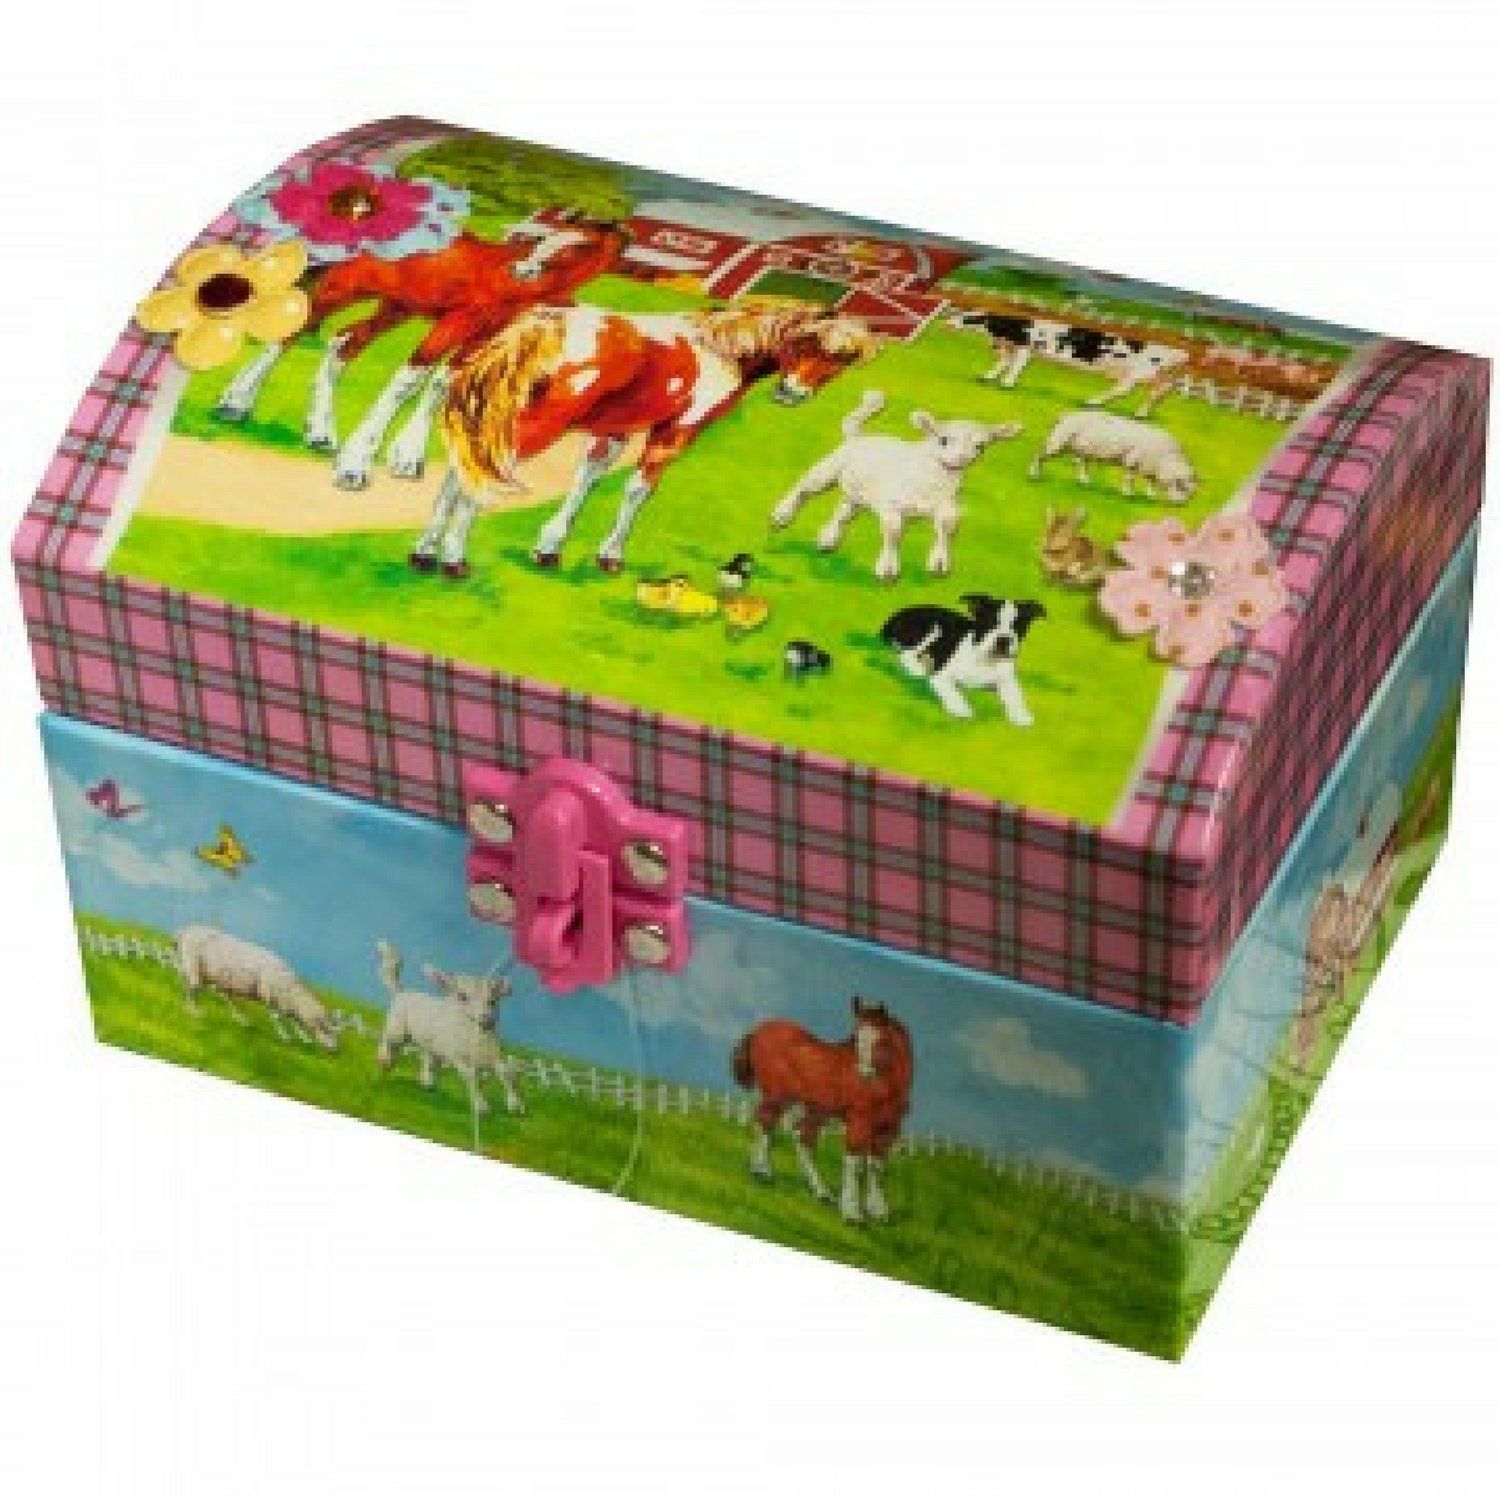 Horse Musical Jewelry Box for Girls - Beautiful Musical Necklace Box that comes with a Free Cool Gifts Yellow Necklace - The Perfect Girl Gifts for Cowgirls and Horse Lovers by BoomBoxHub (Image #3)